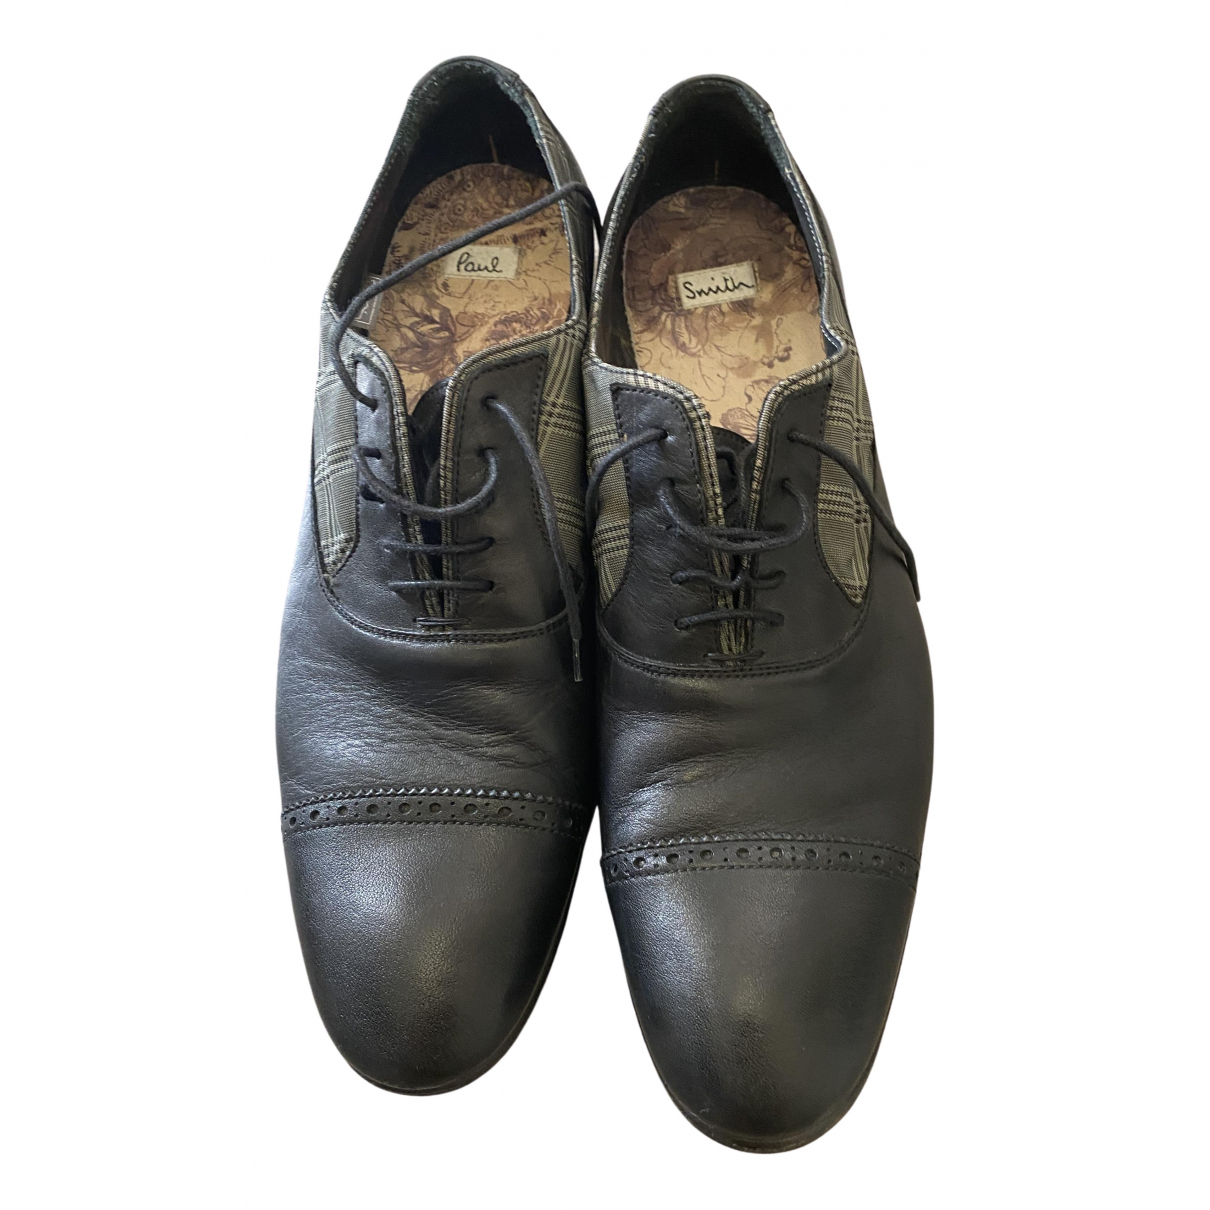 Paul Smith - Derbies   pour homme en cuir - noir